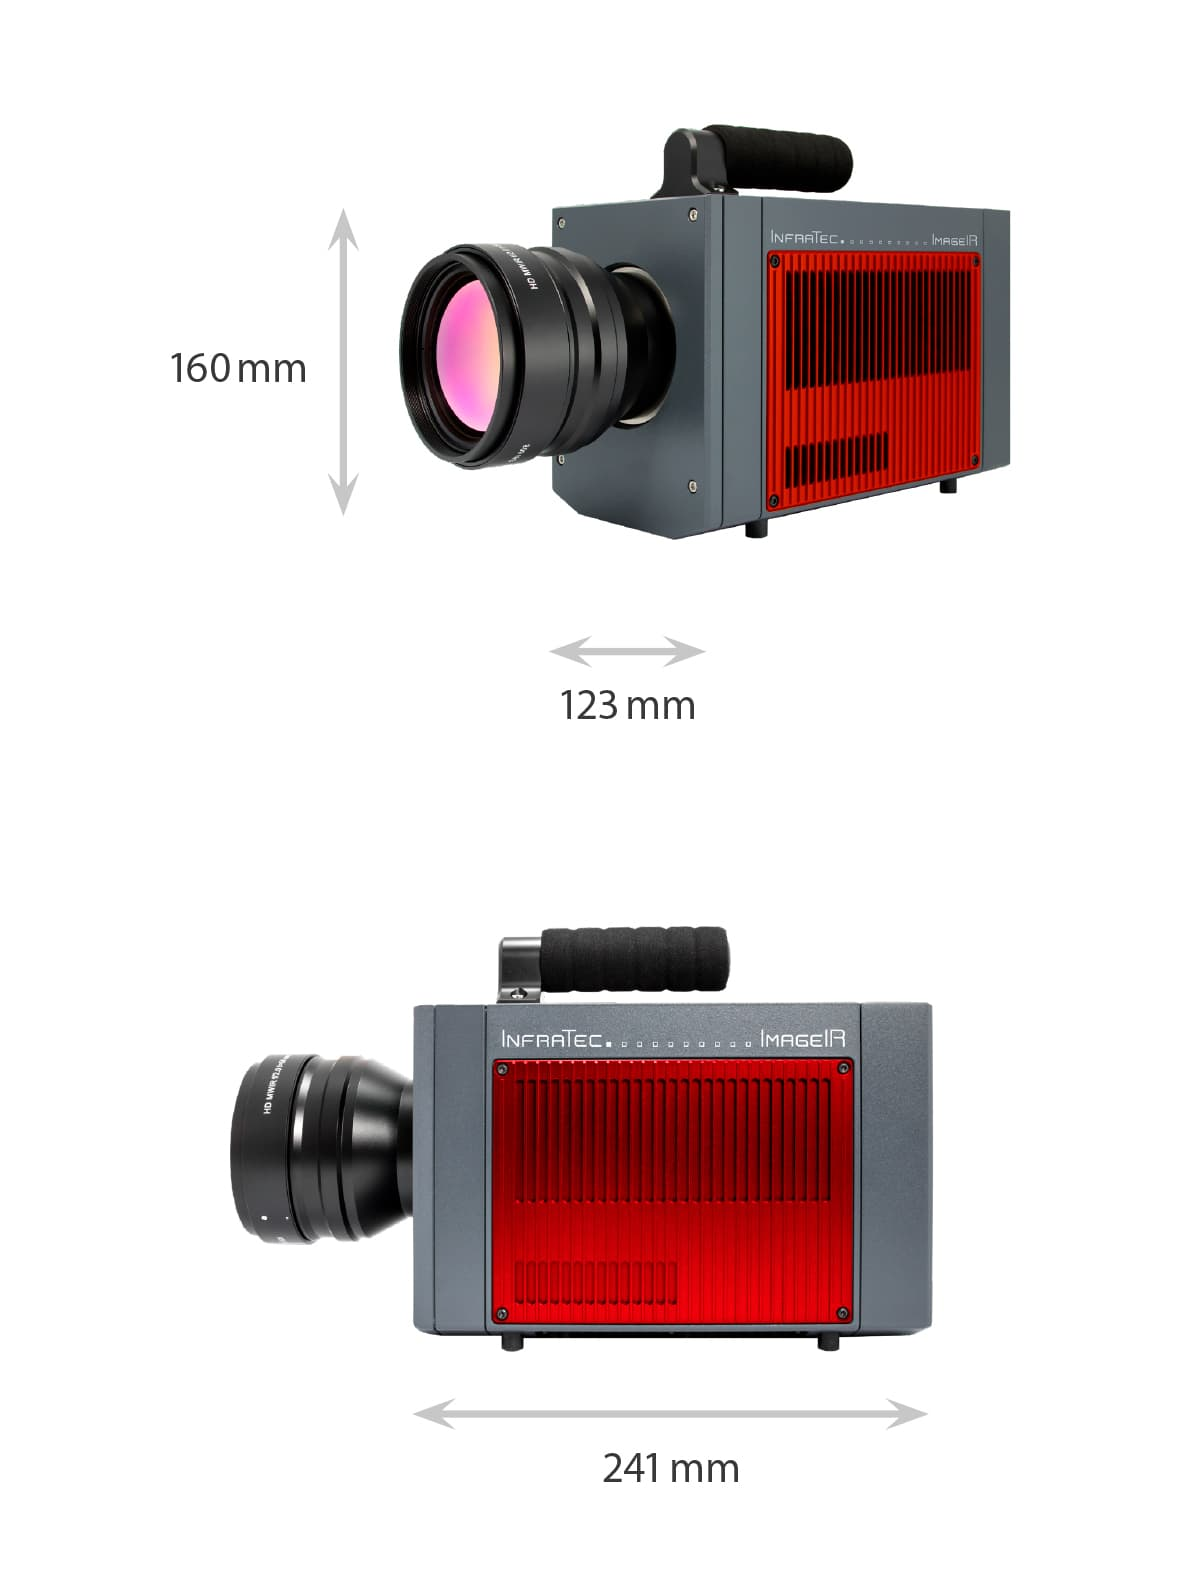 Dimensions of the ImageIR 10300